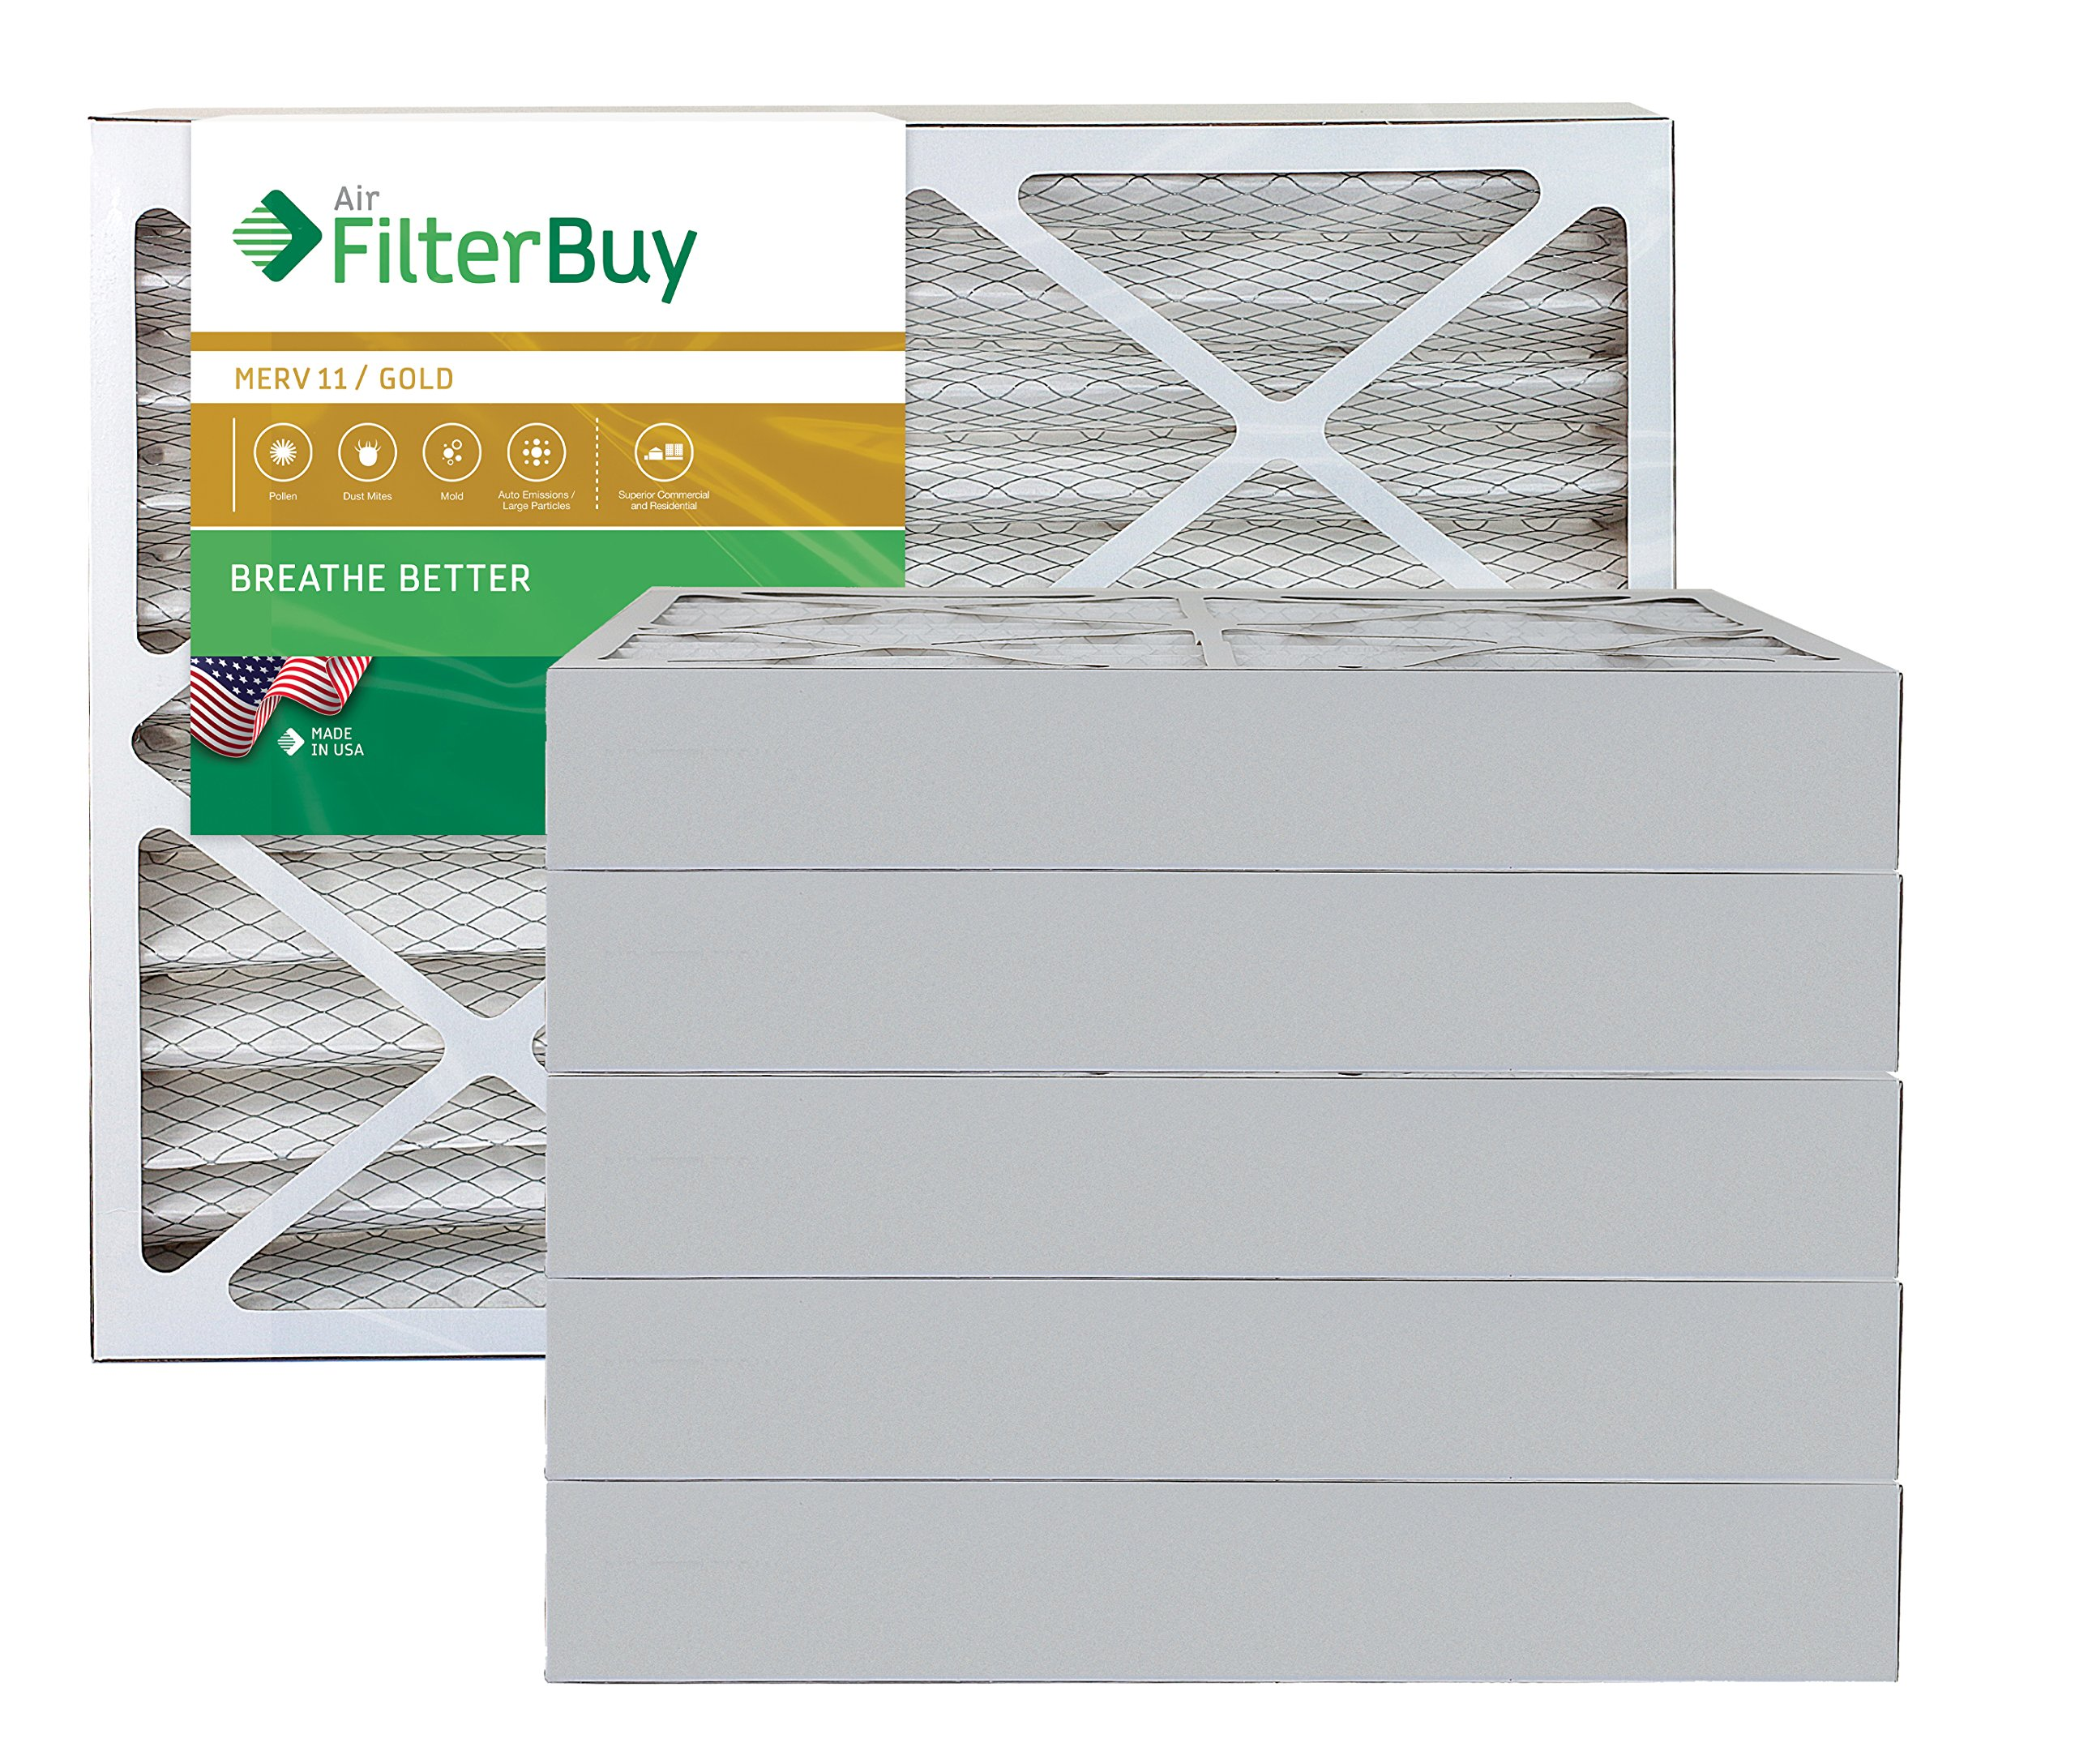 AFB Gold MERV 11 24x24x4 Air Filter., Furnace Filter., AC Filter. Pack of 6 Filters. 100% produced in the USA.